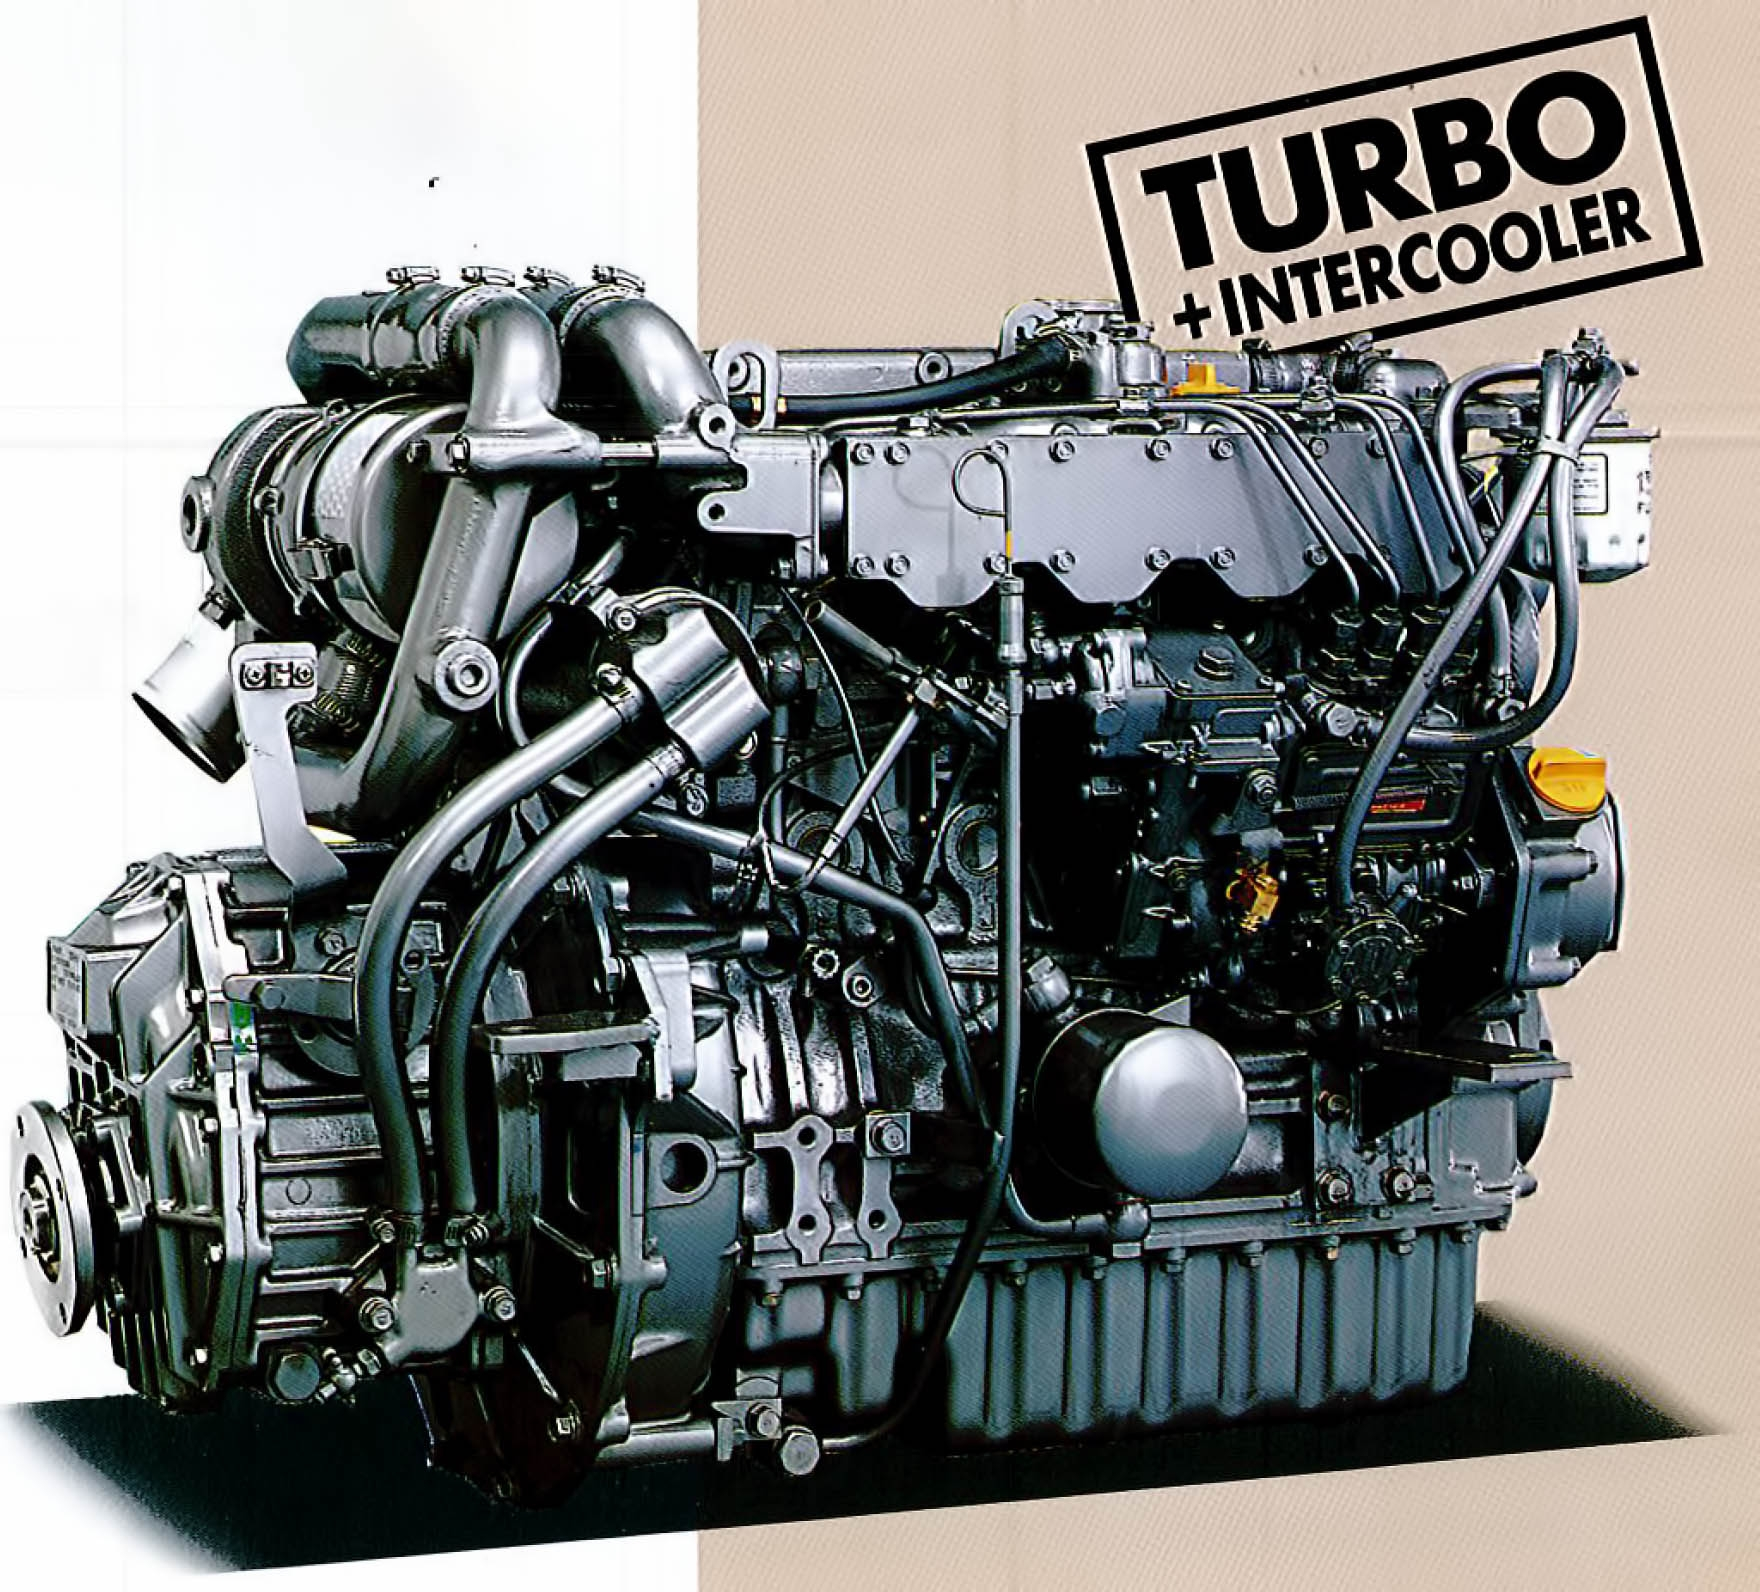 Yanmar 4JH2-HTBE Diesel Marine Engine Information and Specifications